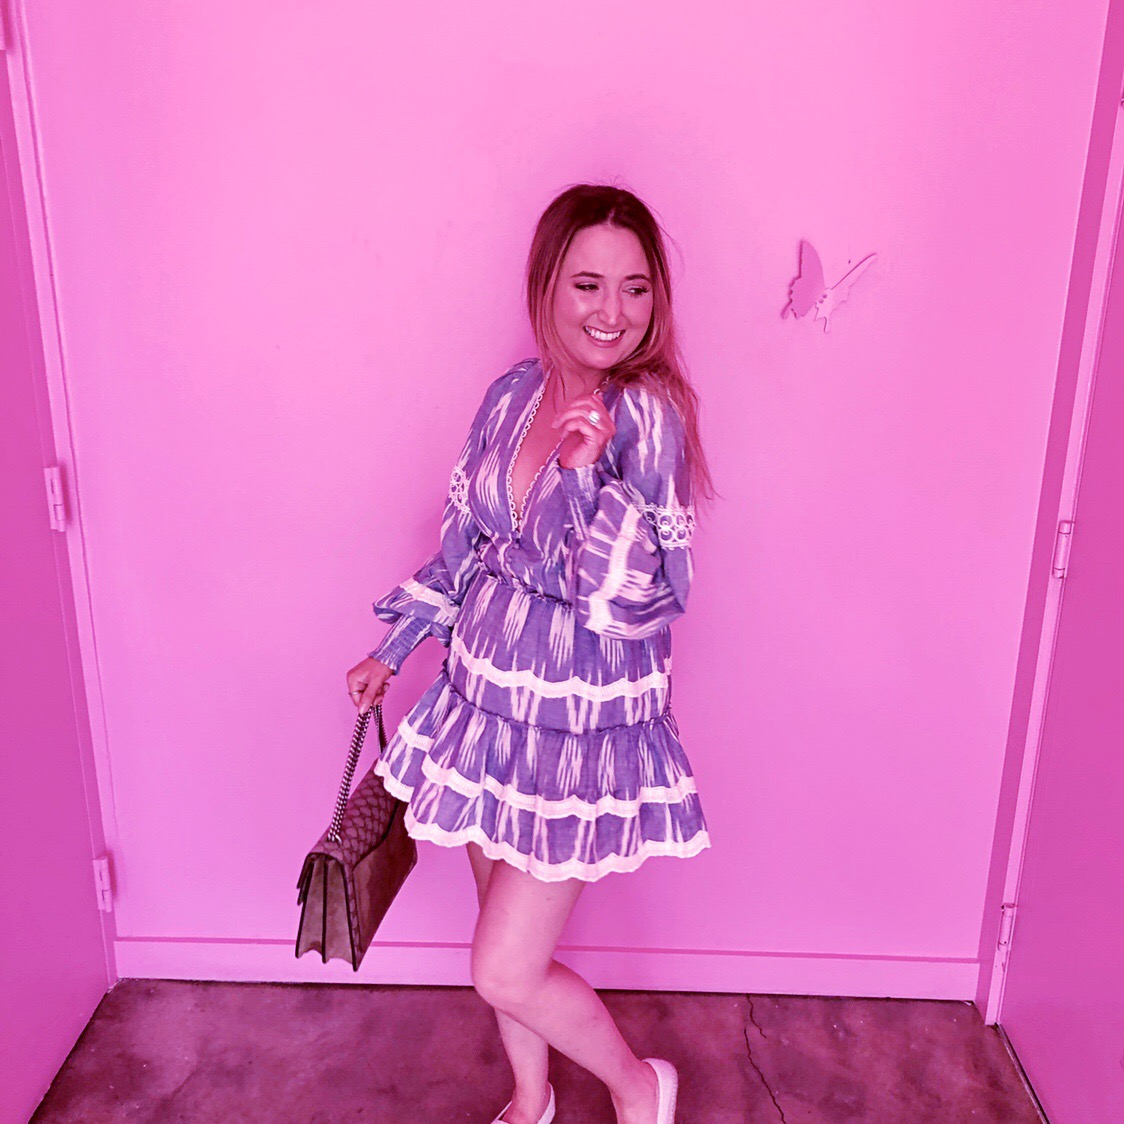 Astra Miami Will Make Your Instagram Likes Double Overnight, hemant and nandita dress, revolve dress, blue and white striped dress, gucci dionysus medium, hemant and nandita x revolve mini dress, astra miami, pink wall, pink butterfly wall